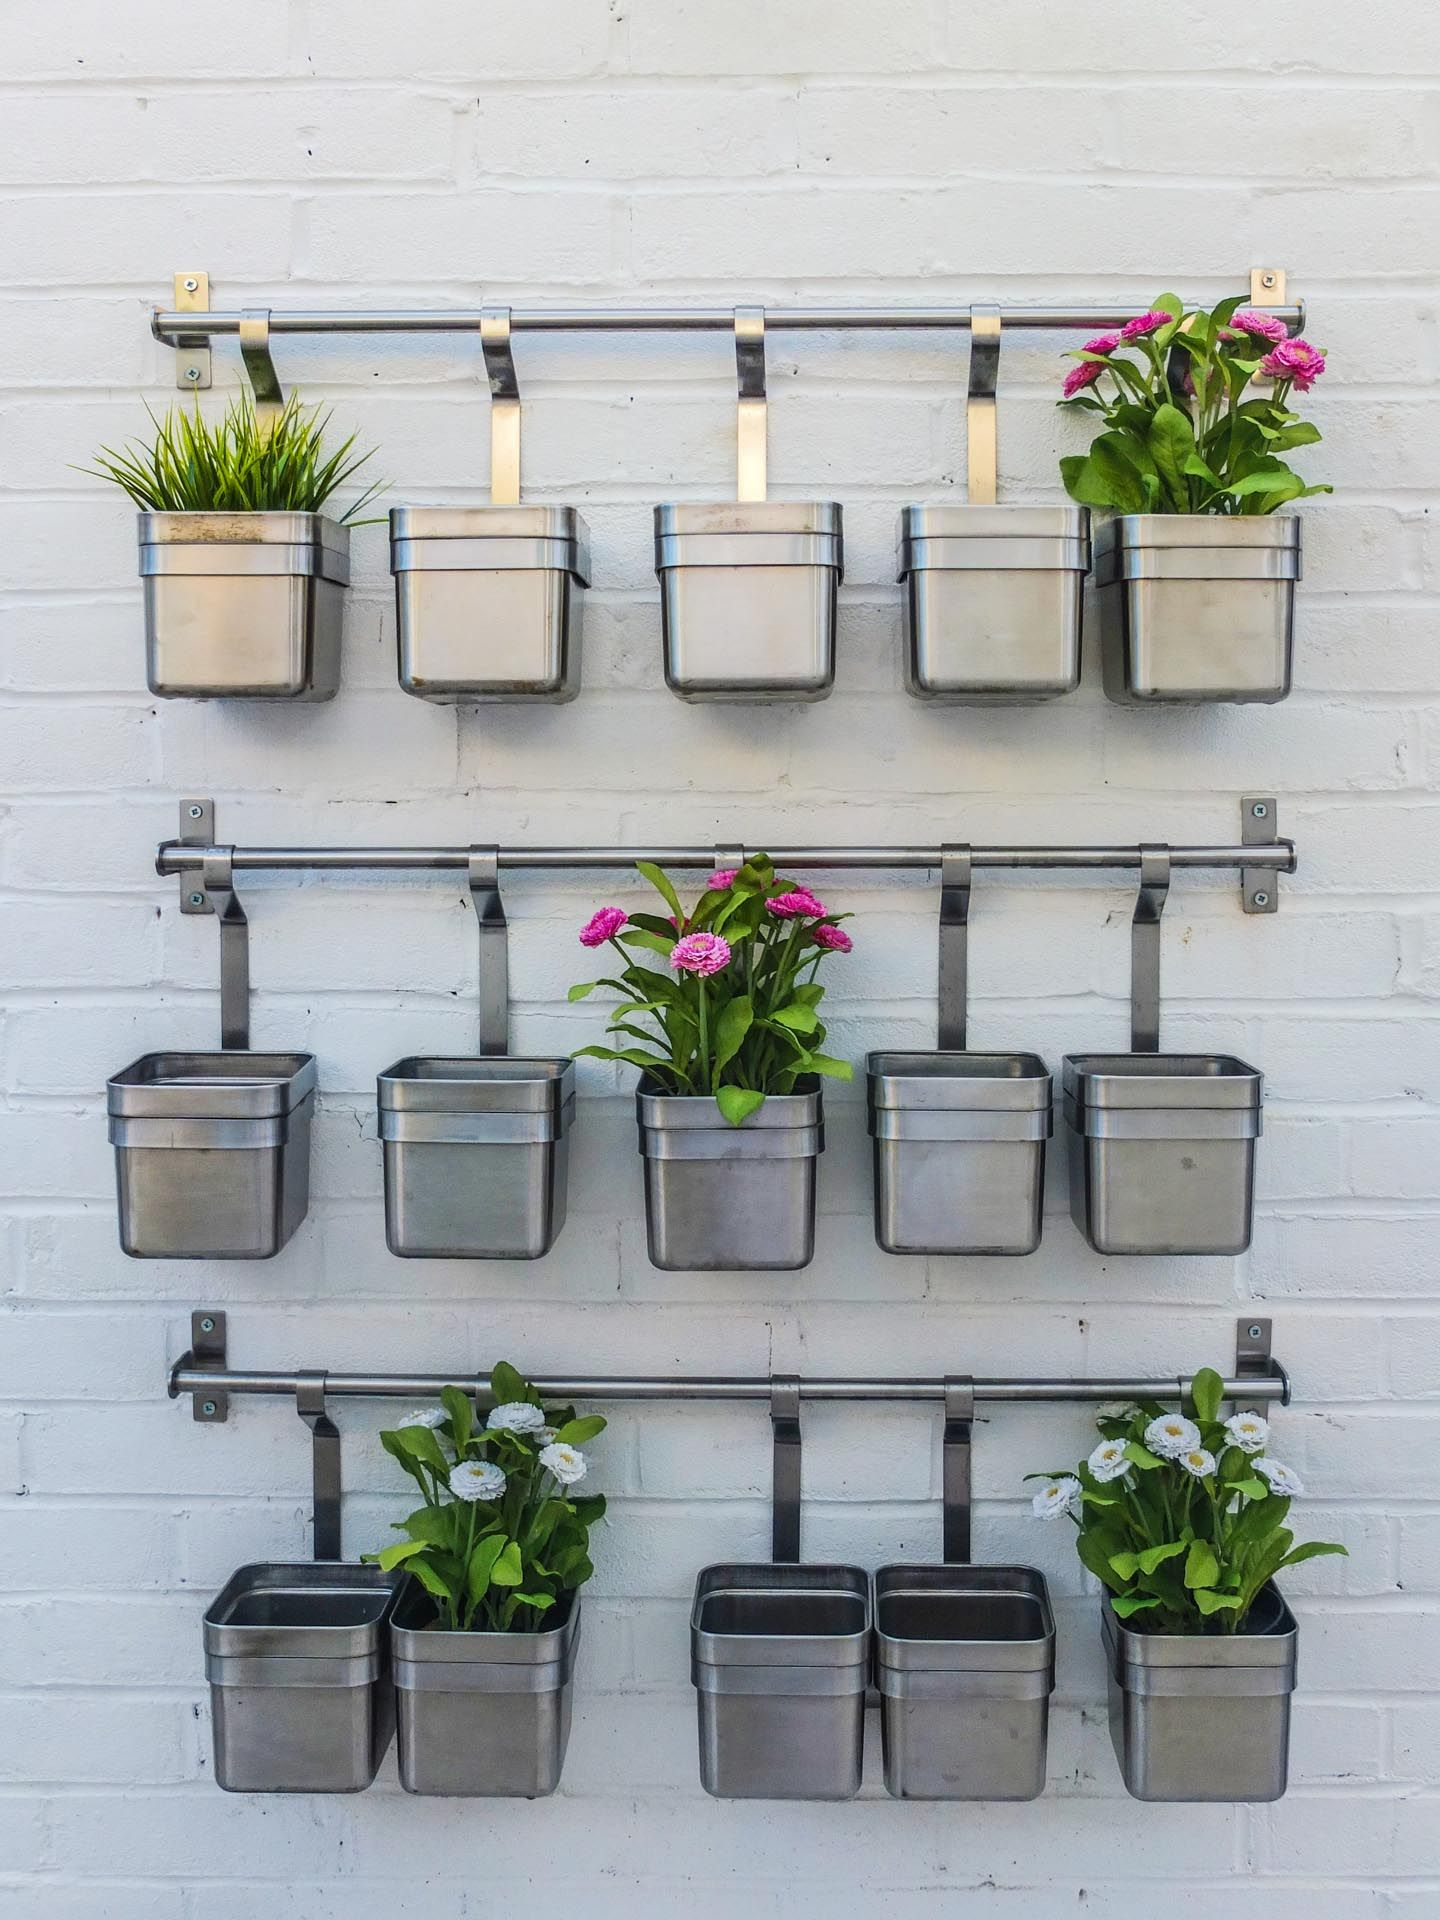 Recycled Pots To Create Your Very Own Miniature Herb Garden Diy